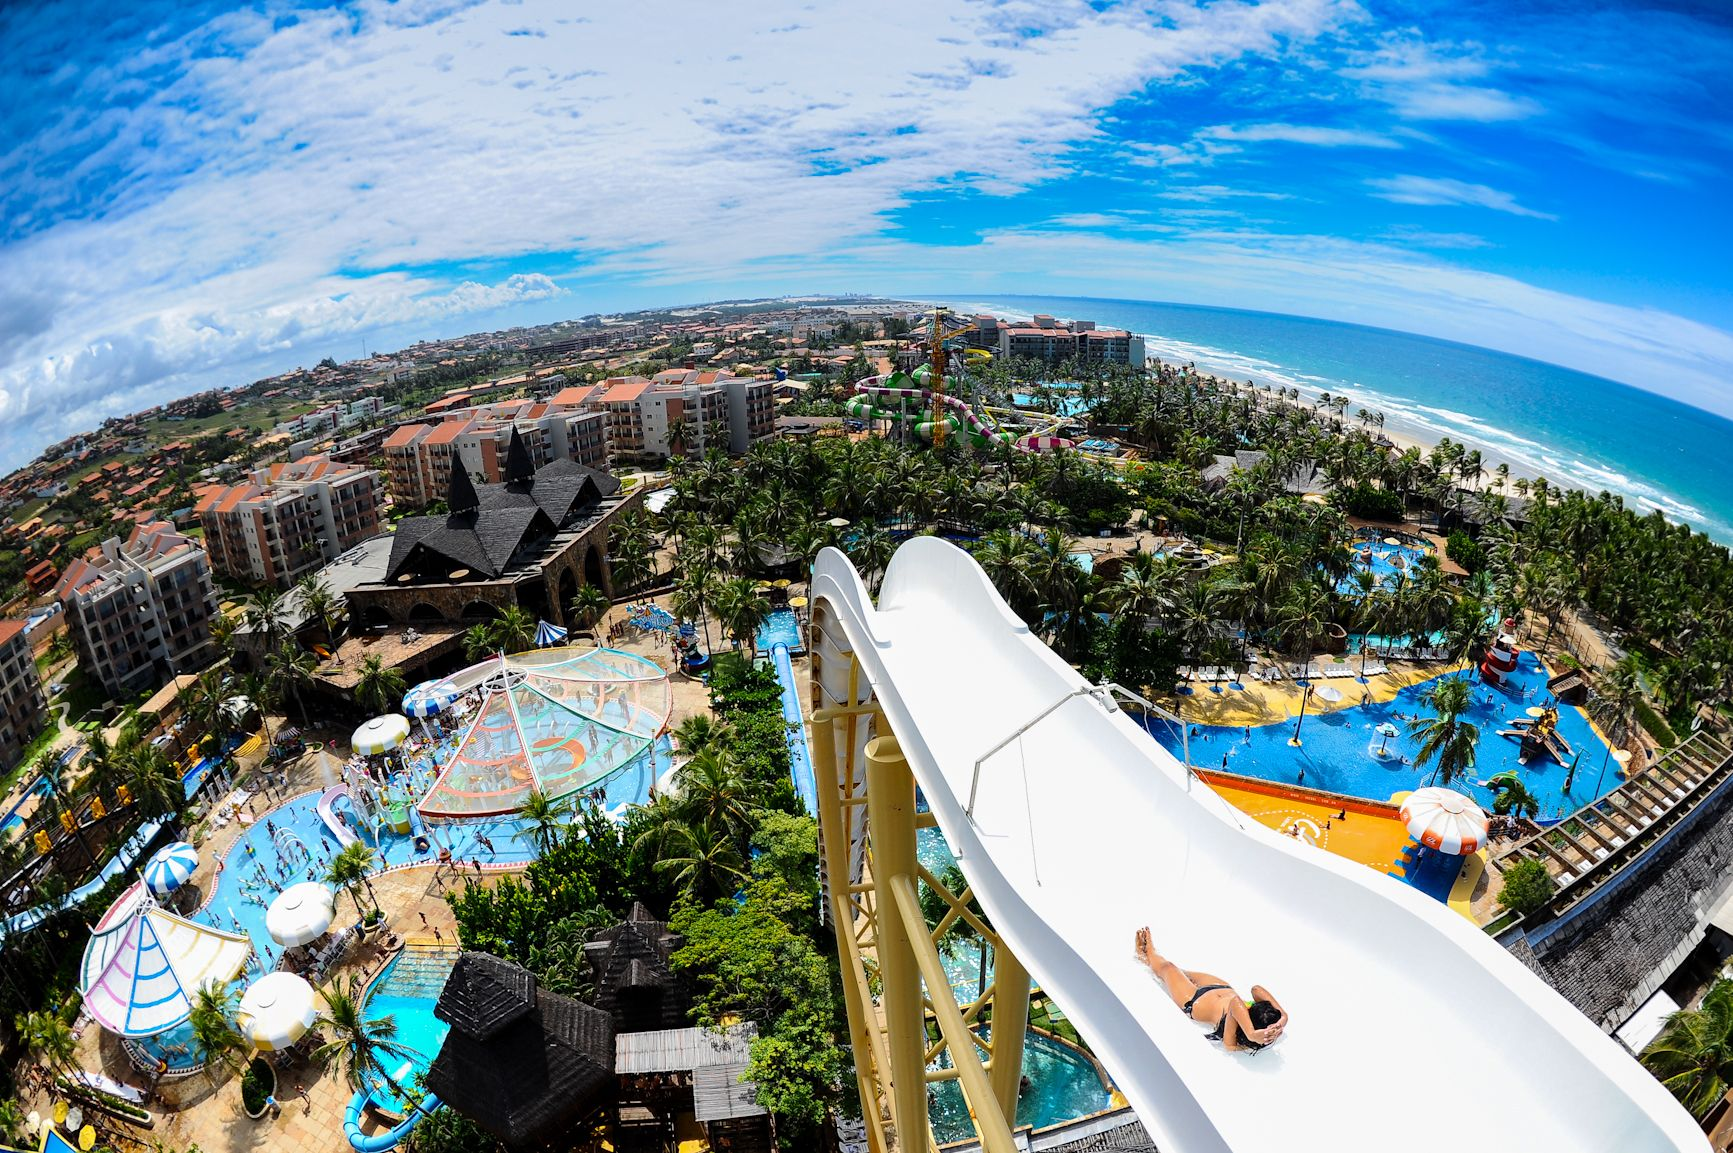 Tallest Water Slides in the World - Top 5 Tallest Waterslides